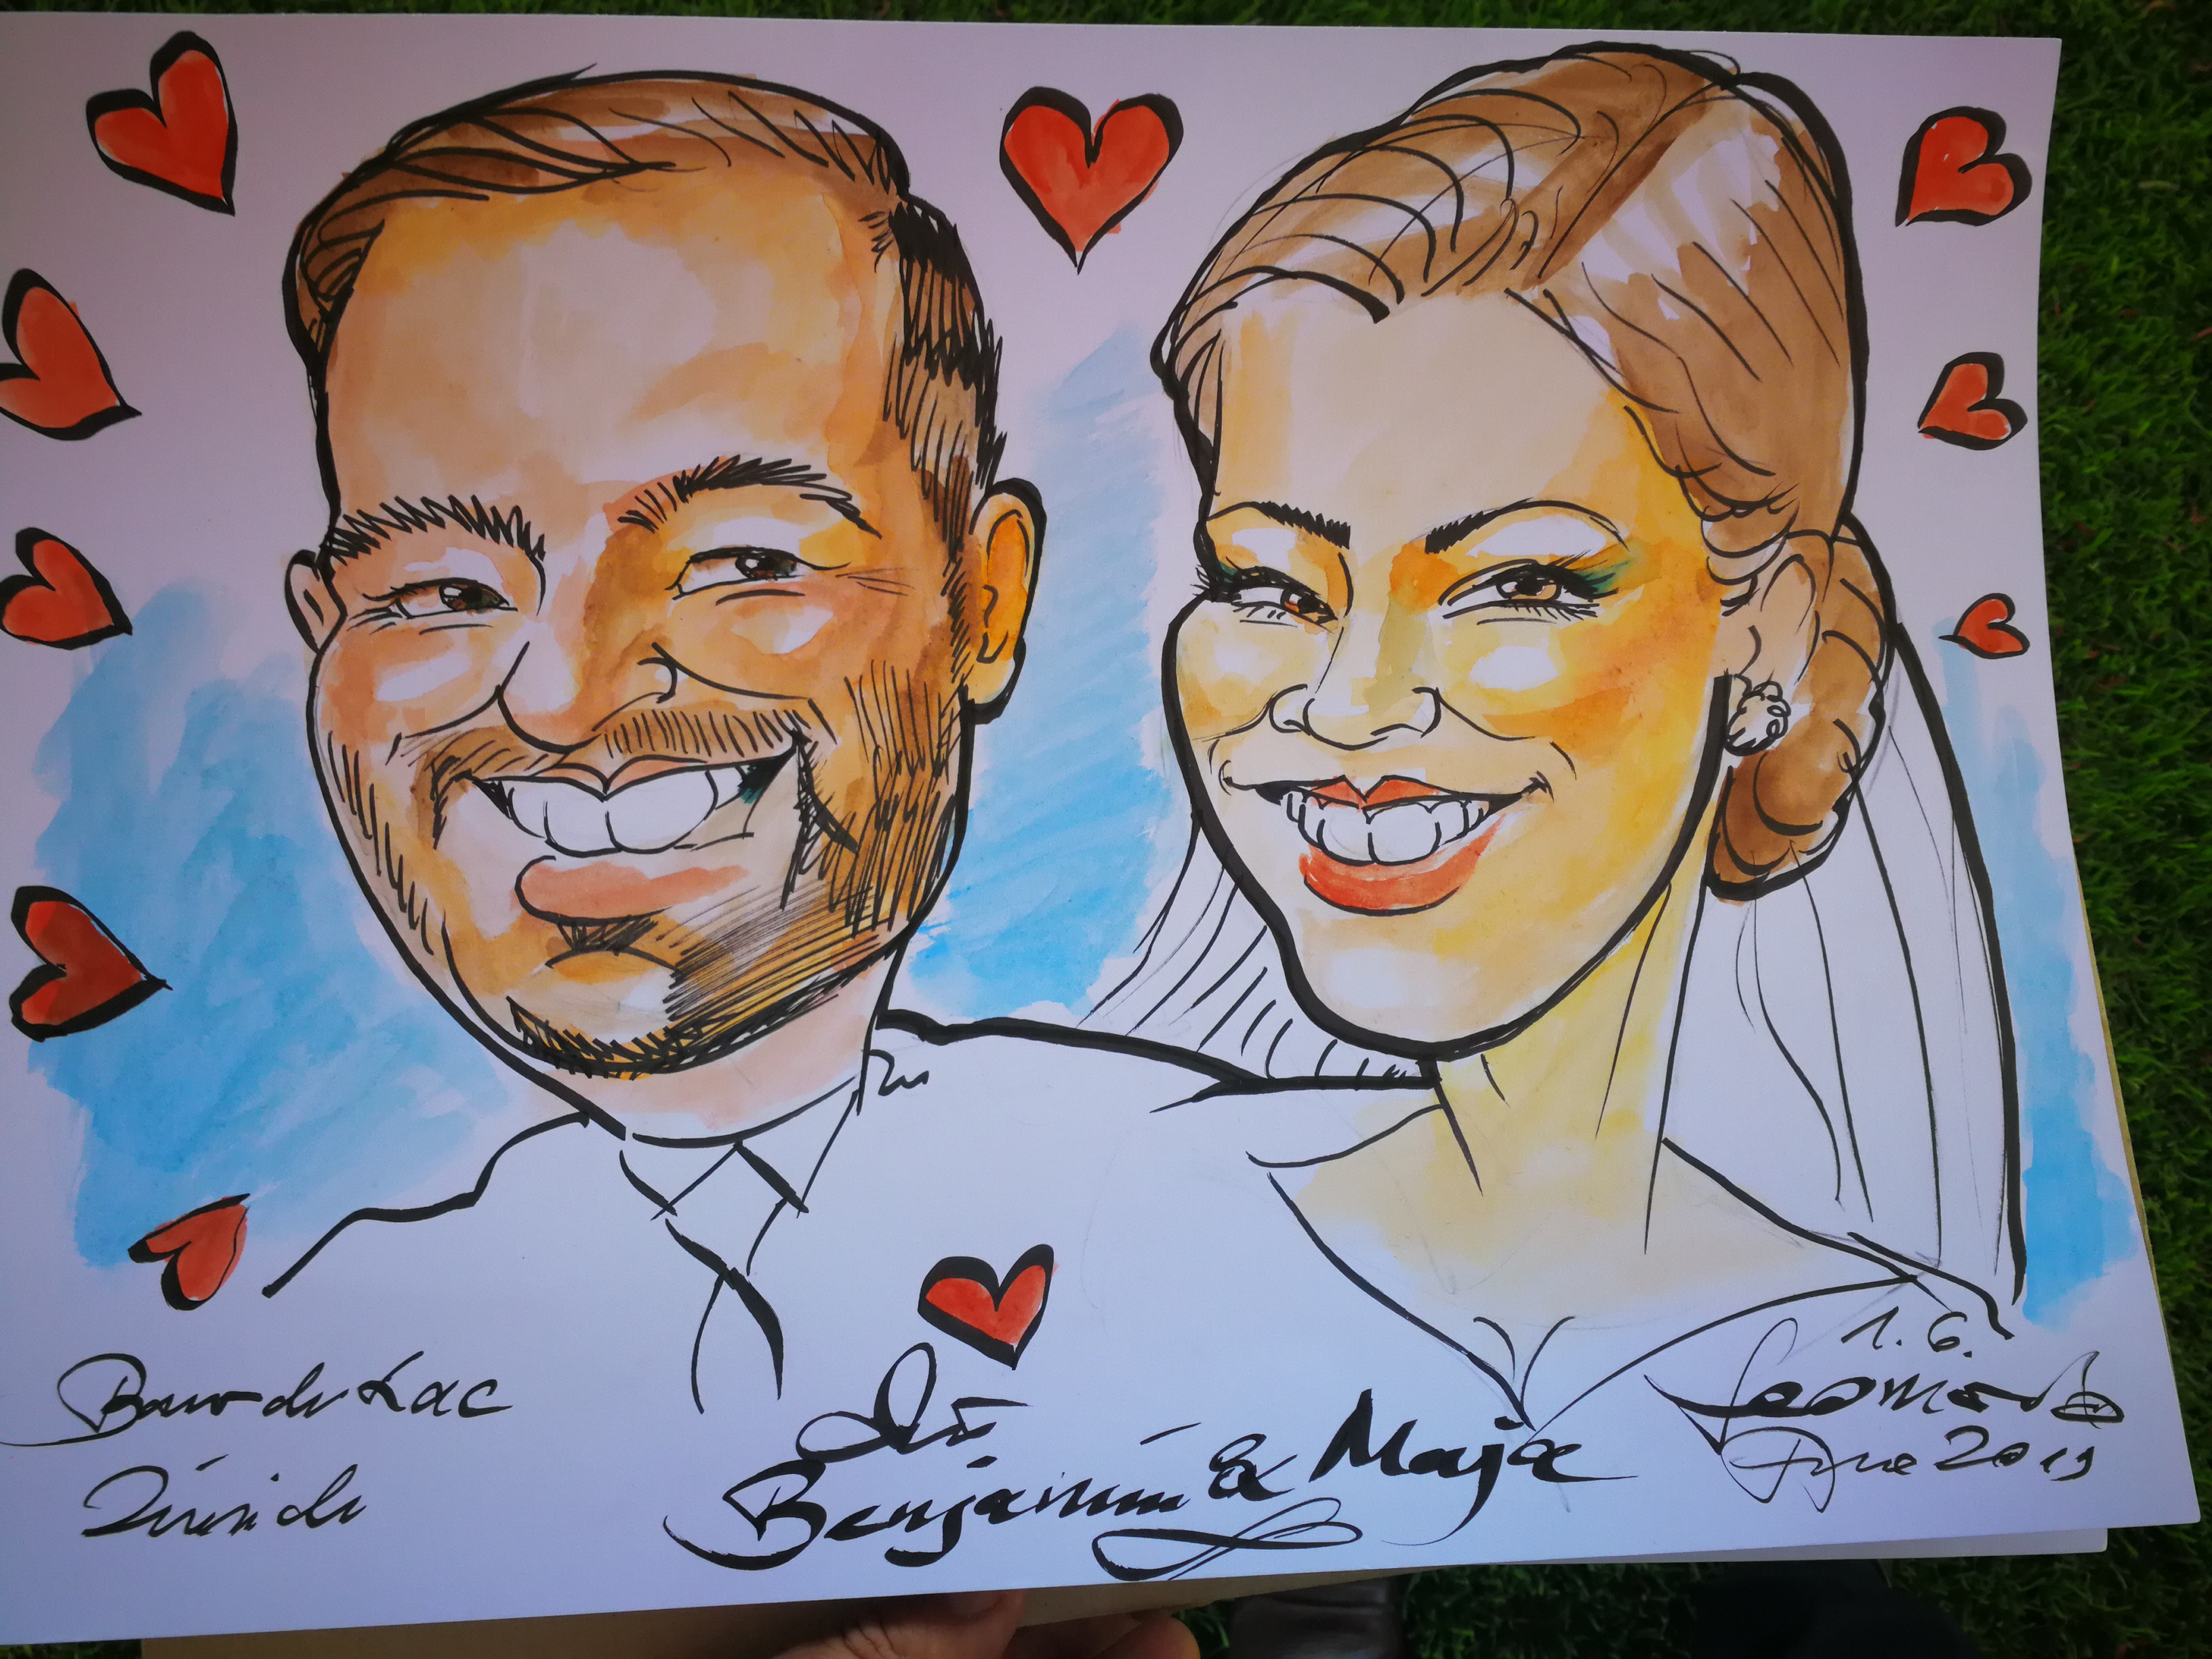 Wedding photo caricature photograh photographs planner service weddings group team caricatures Caricaturist Vancouver Nanaimo Victoria BC portrait painter portrait artist caricature from photo photographs draw to traide fair school team corporate event business hotel conference congress world meeting natical days comox filberg festival christmas xmas party canada